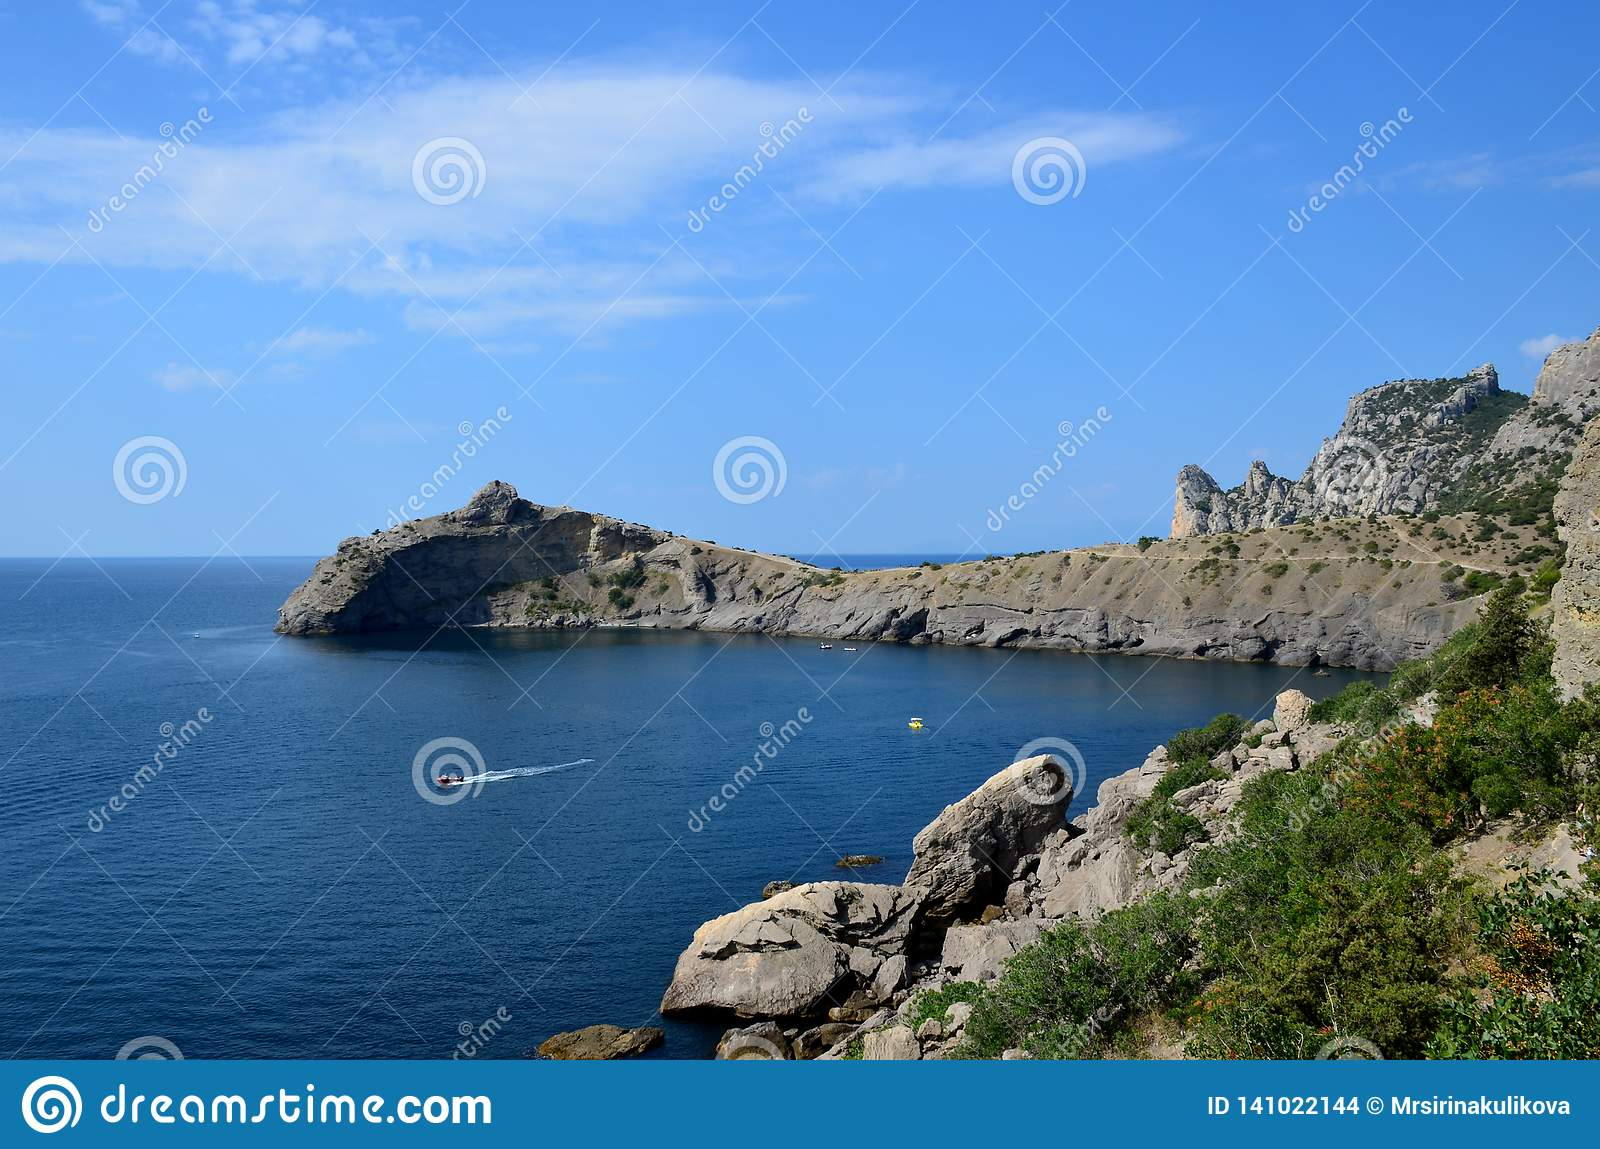 Cape Kapchik in the Black Sea near the village of Novy Svet sunny summer day. Mountain in the form of a dolphin, side view